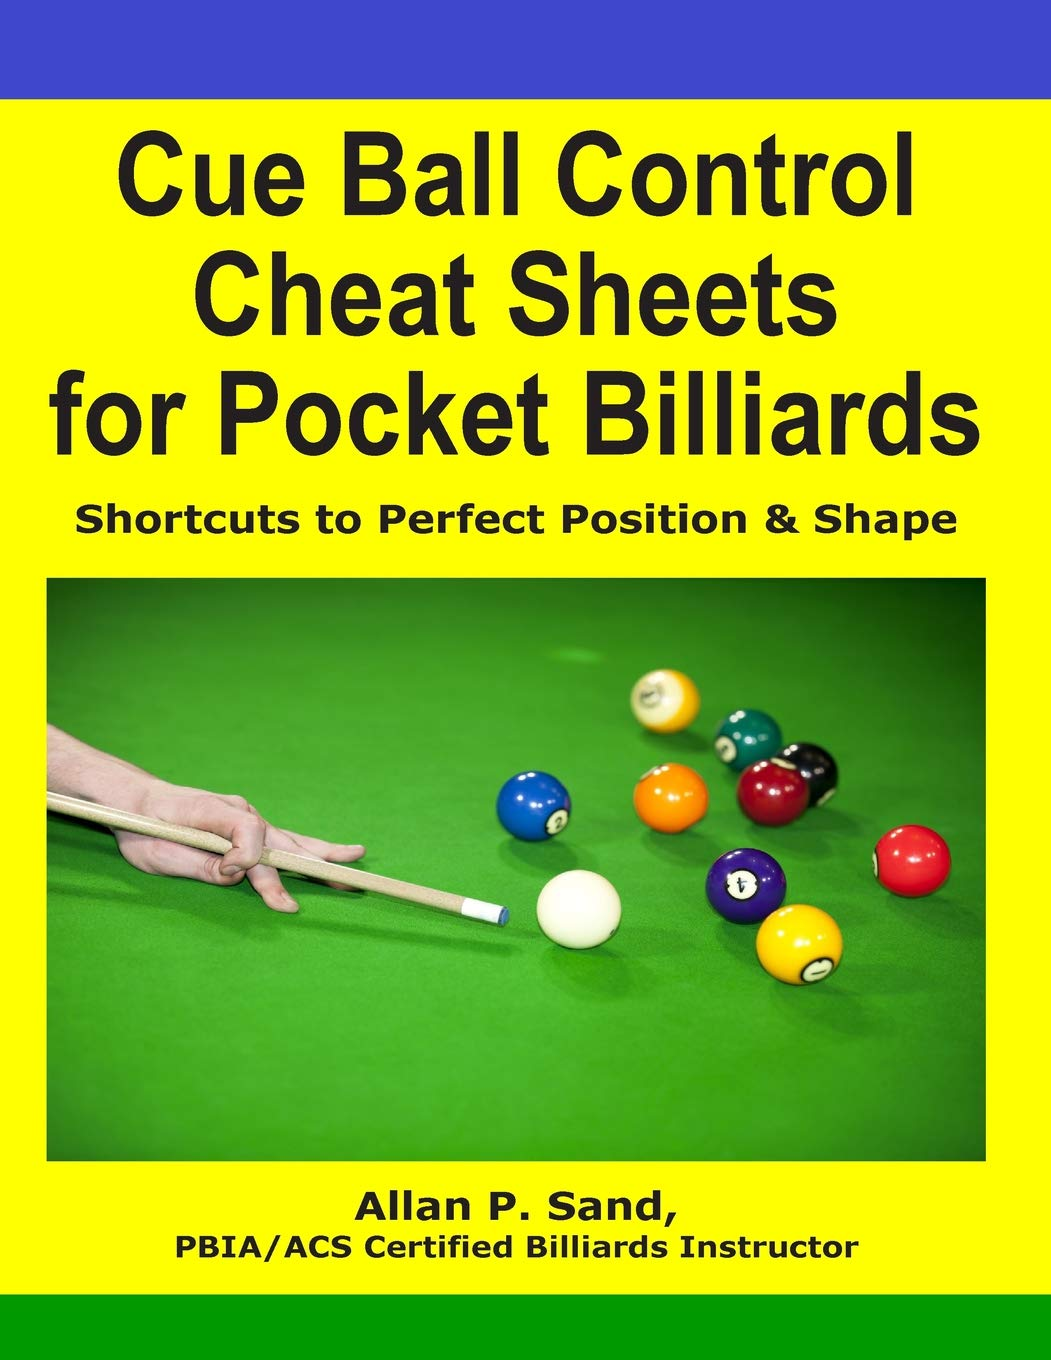 Cue Ball Control Cheat Sheets for Pocket Billiards